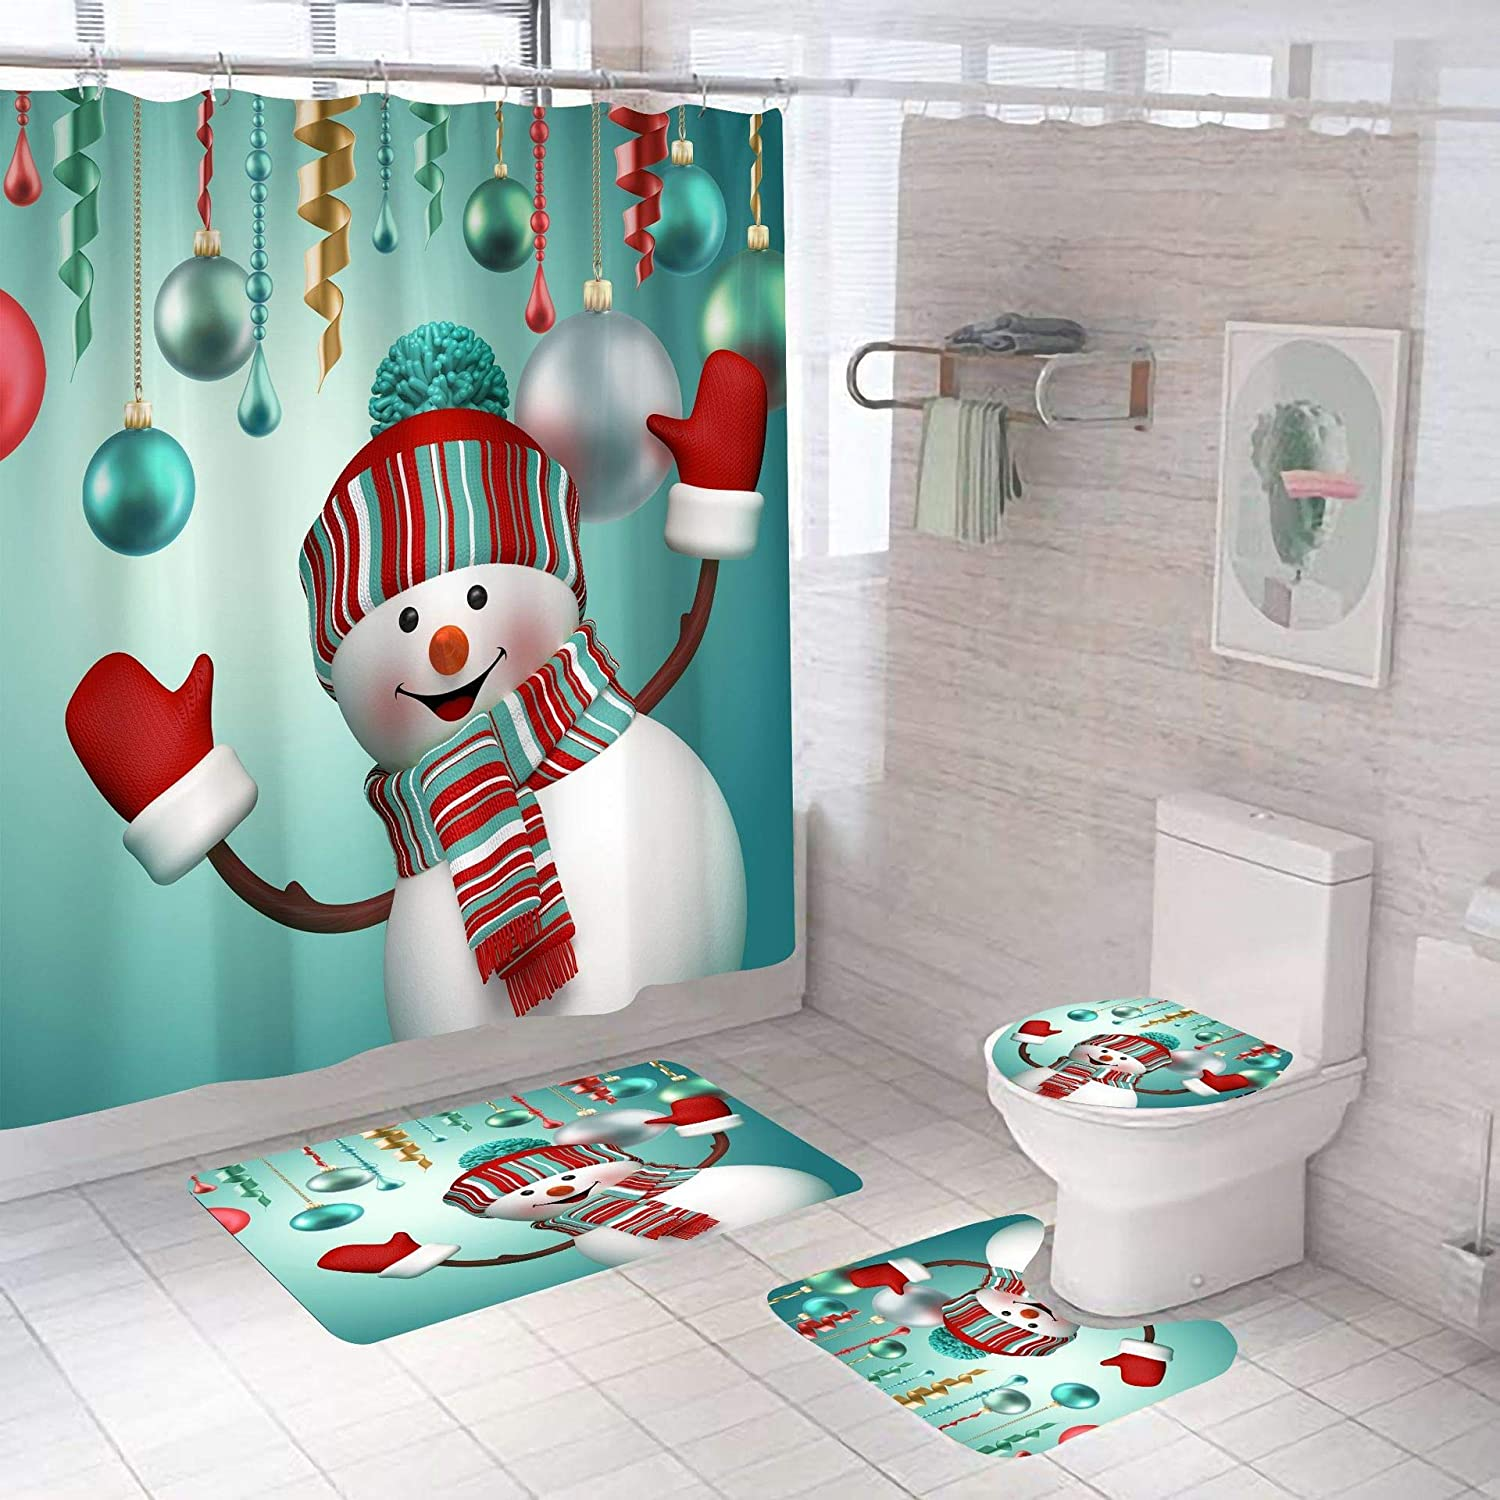 4 PCS Merry Christmas Shower Curtain Sets with Non-Slip Rugs and Toilet Lid Cover Xmas Snowman Bath Decor Machine Washable Shower Curtains 72